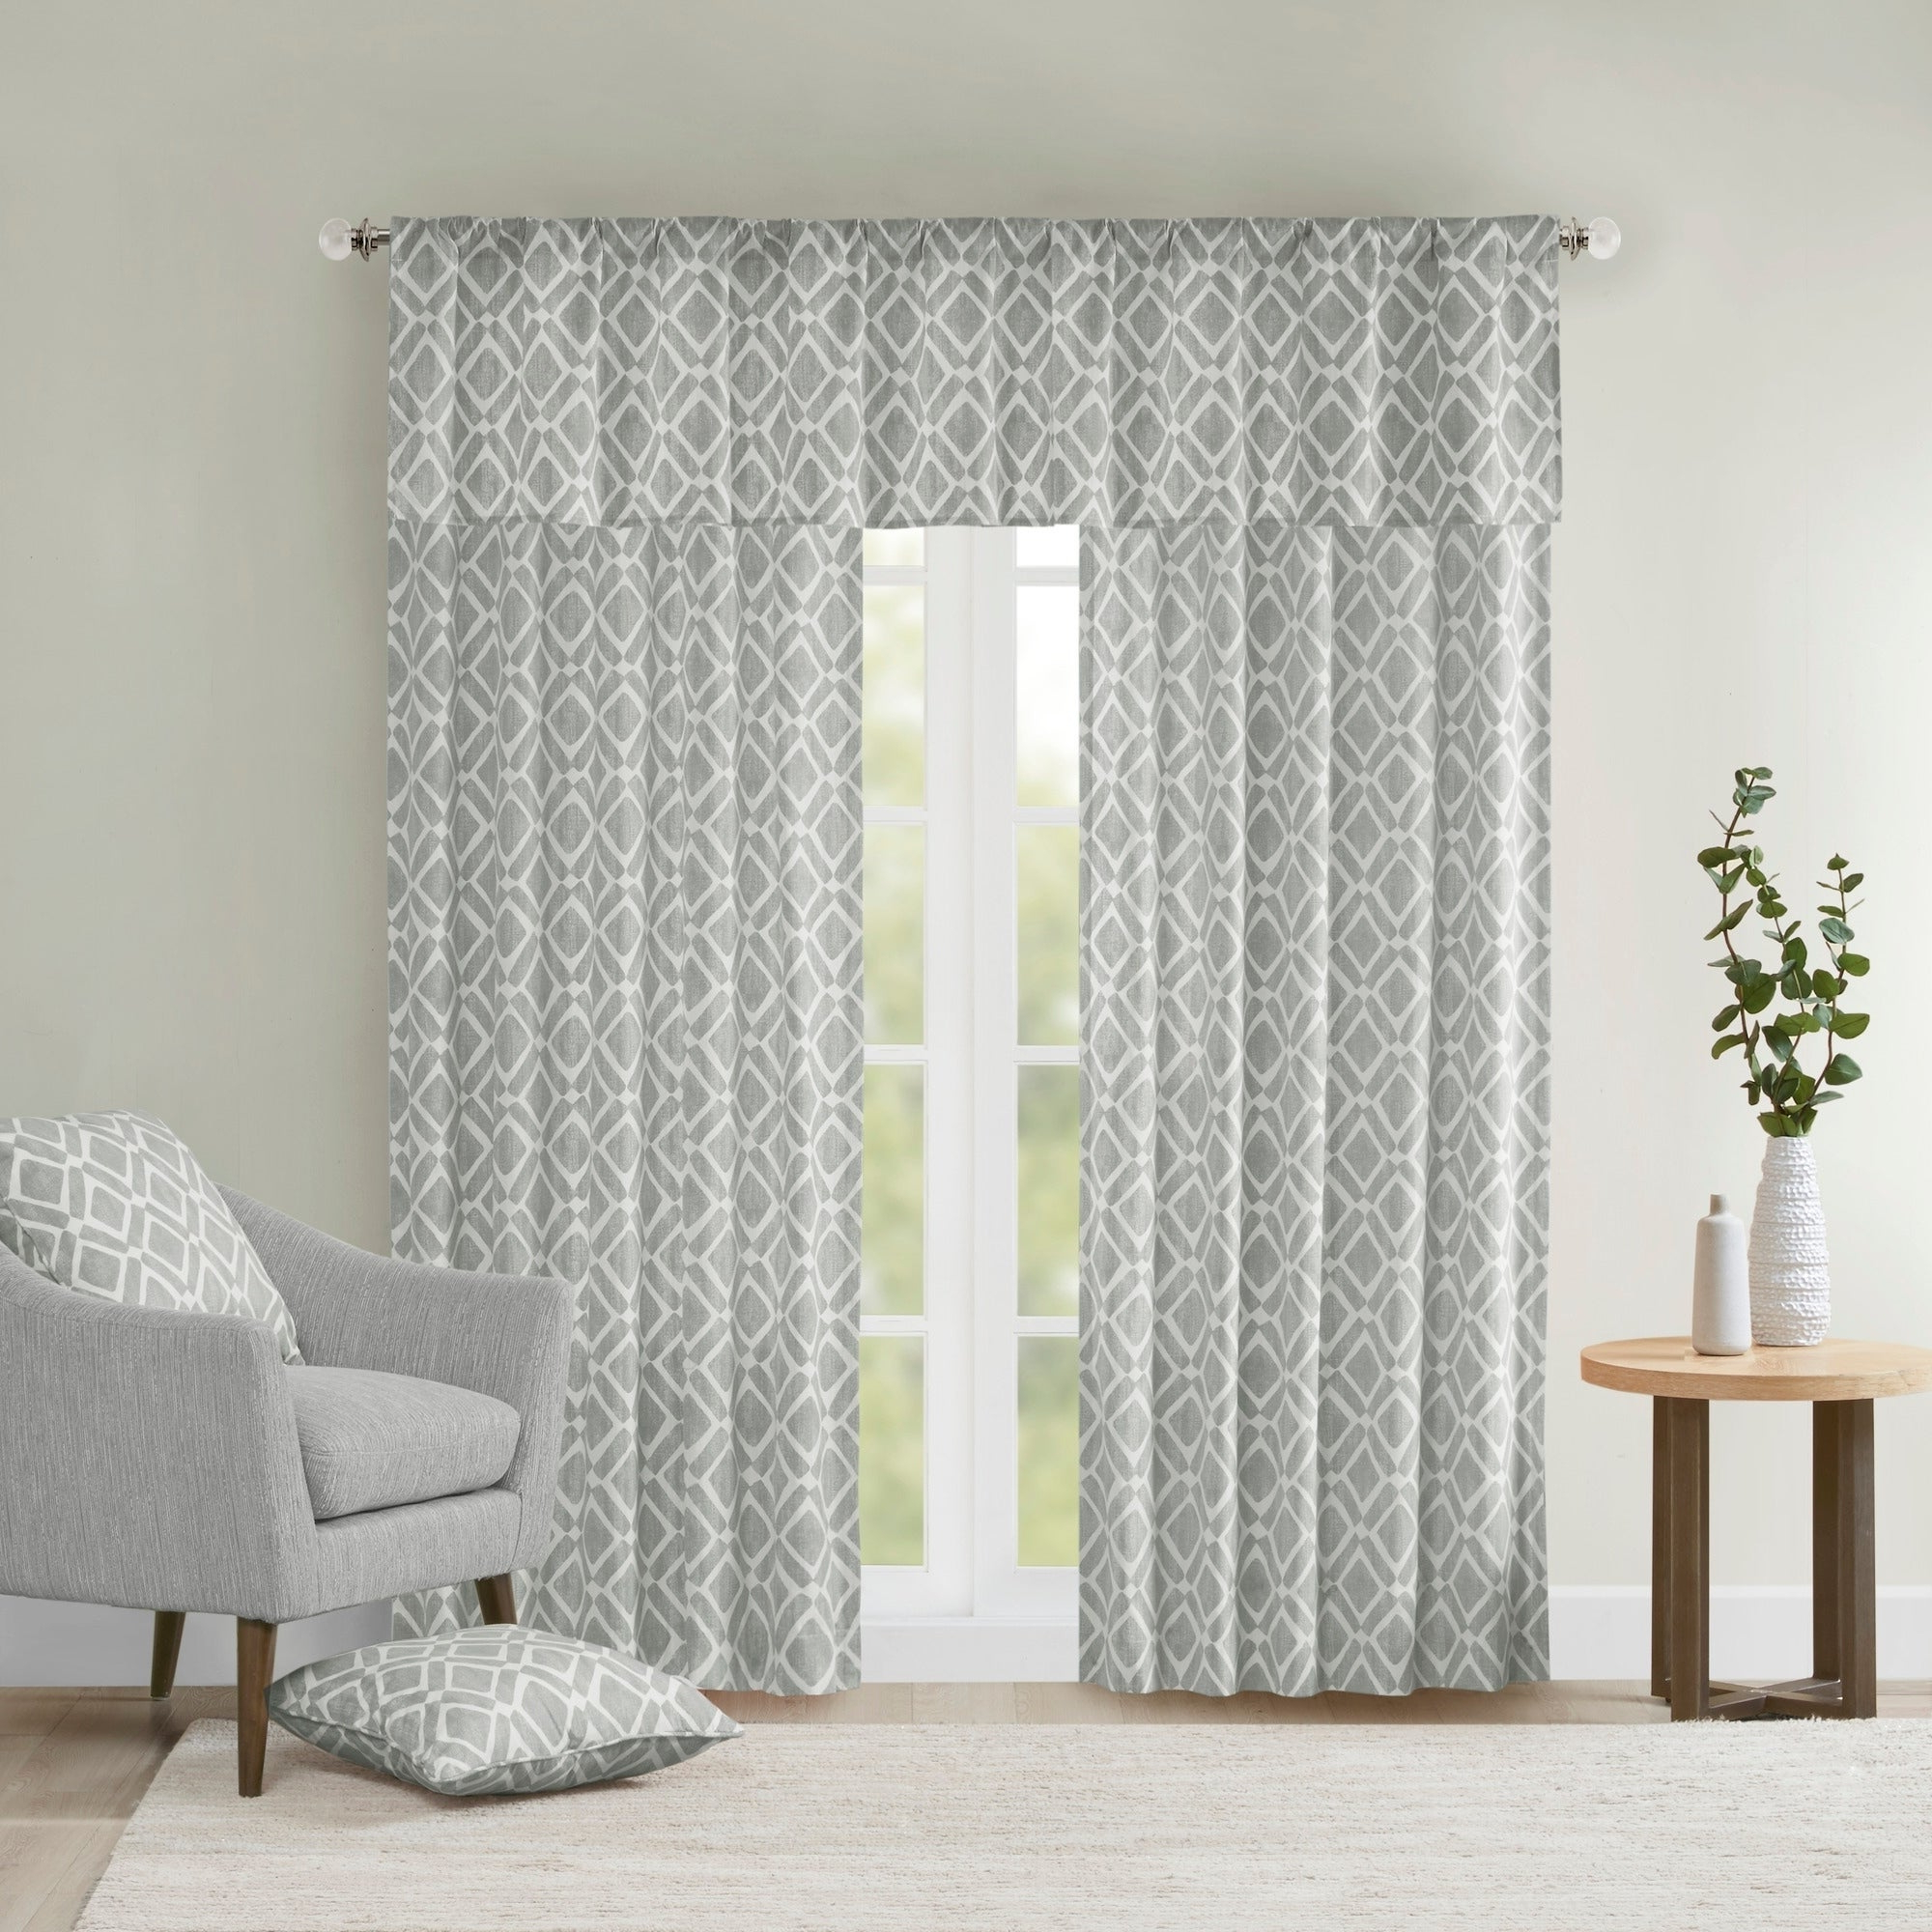 Madison Park Ella Window Curtain Panel Regarding Popular Ella Window Curtain Panels (Gallery 1 of 20)